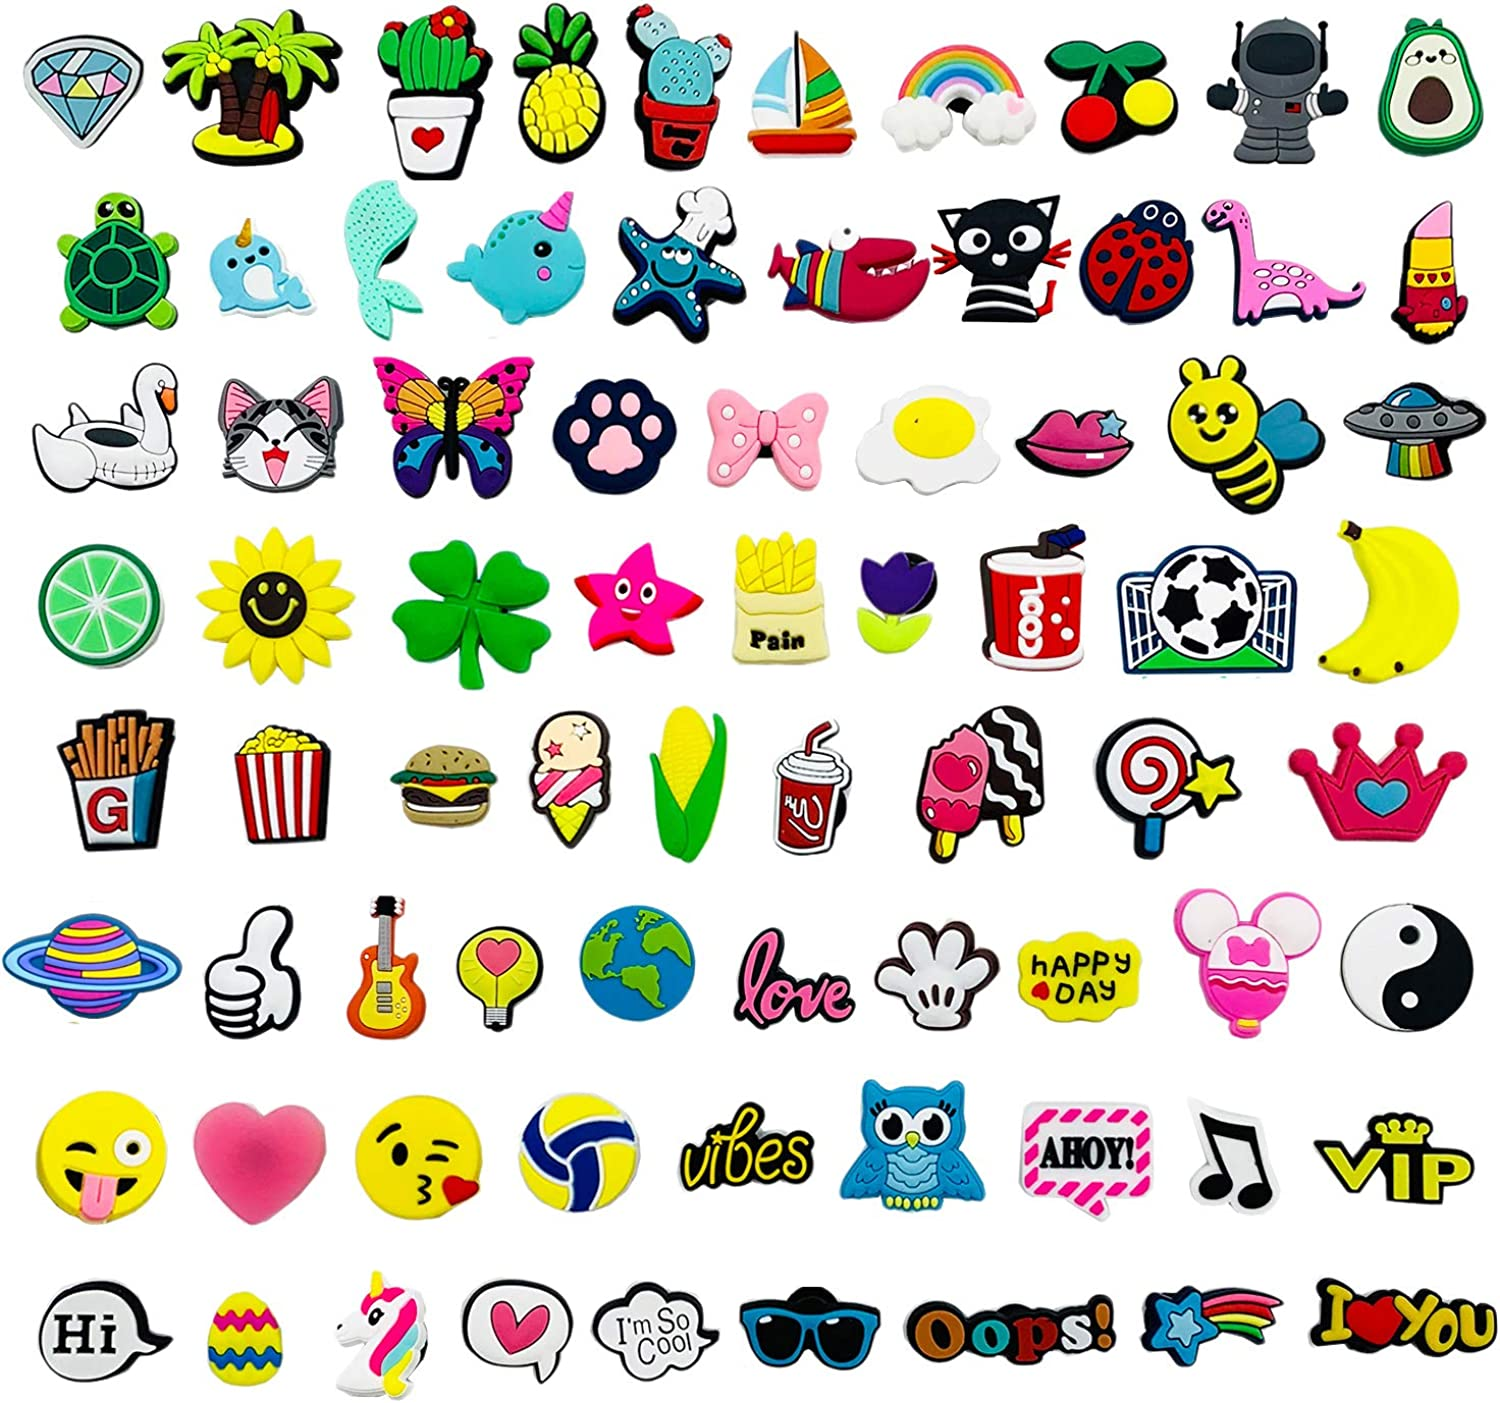 Kinear 75pcs Cute Different Shape Shoes Charms for Shoes Bands Bracelet Wristband Party Gifts, Medium